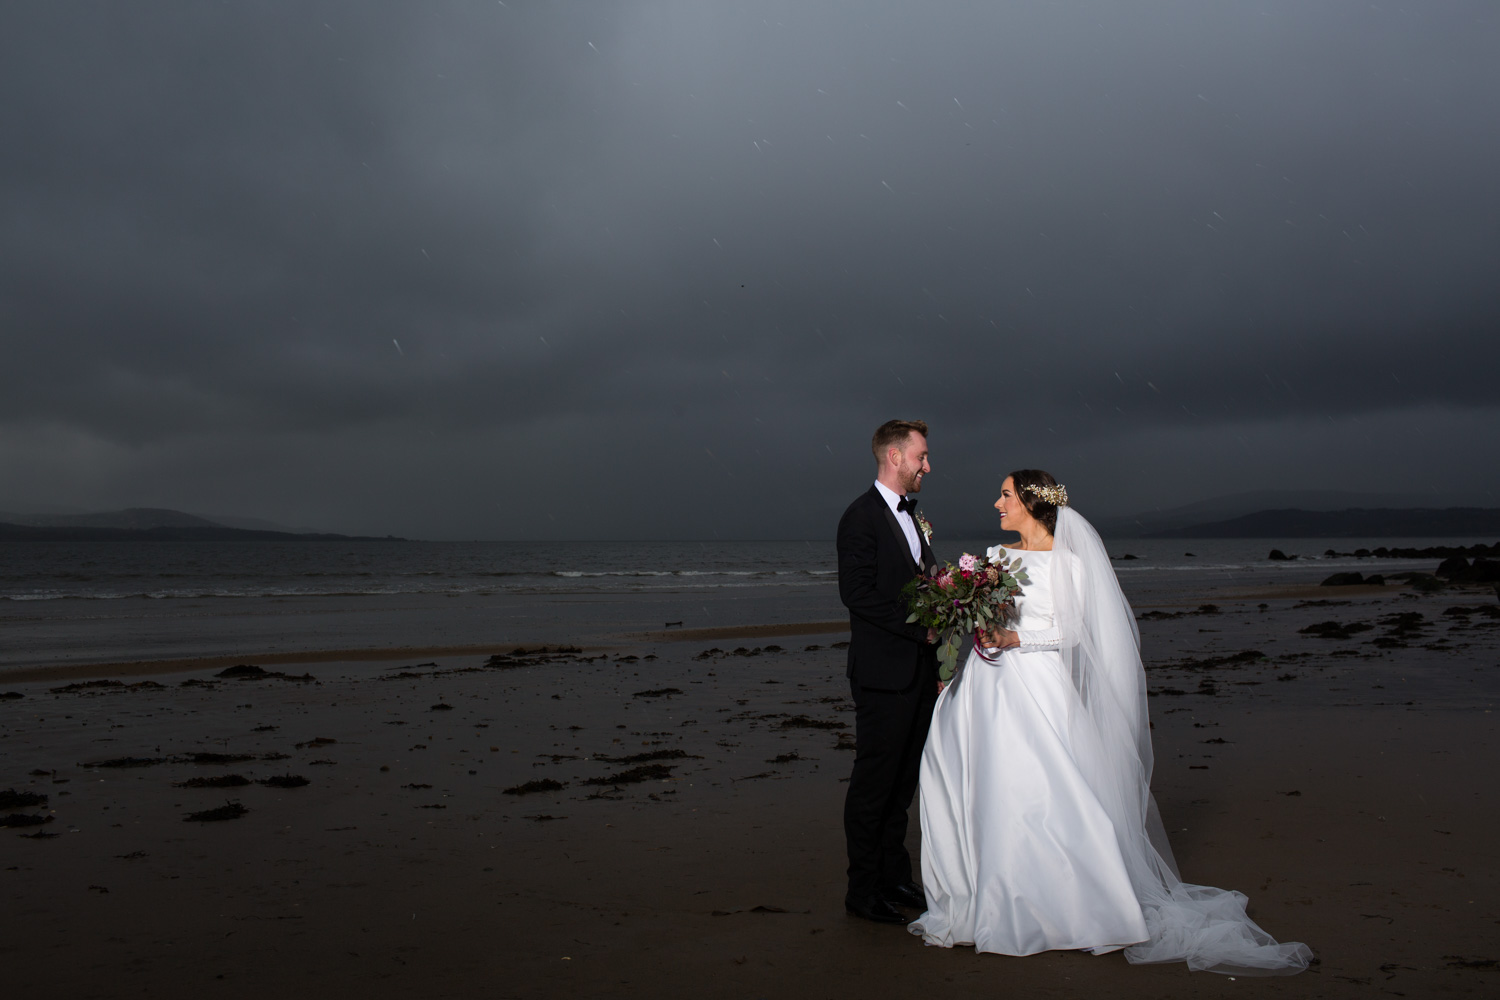 Mark_Barnes_Northern_Ireland_wedding_photographer_Innishowen_Gateway_Donegal_Wedding_photography_Donegal_wedding_photographer-52.jpg